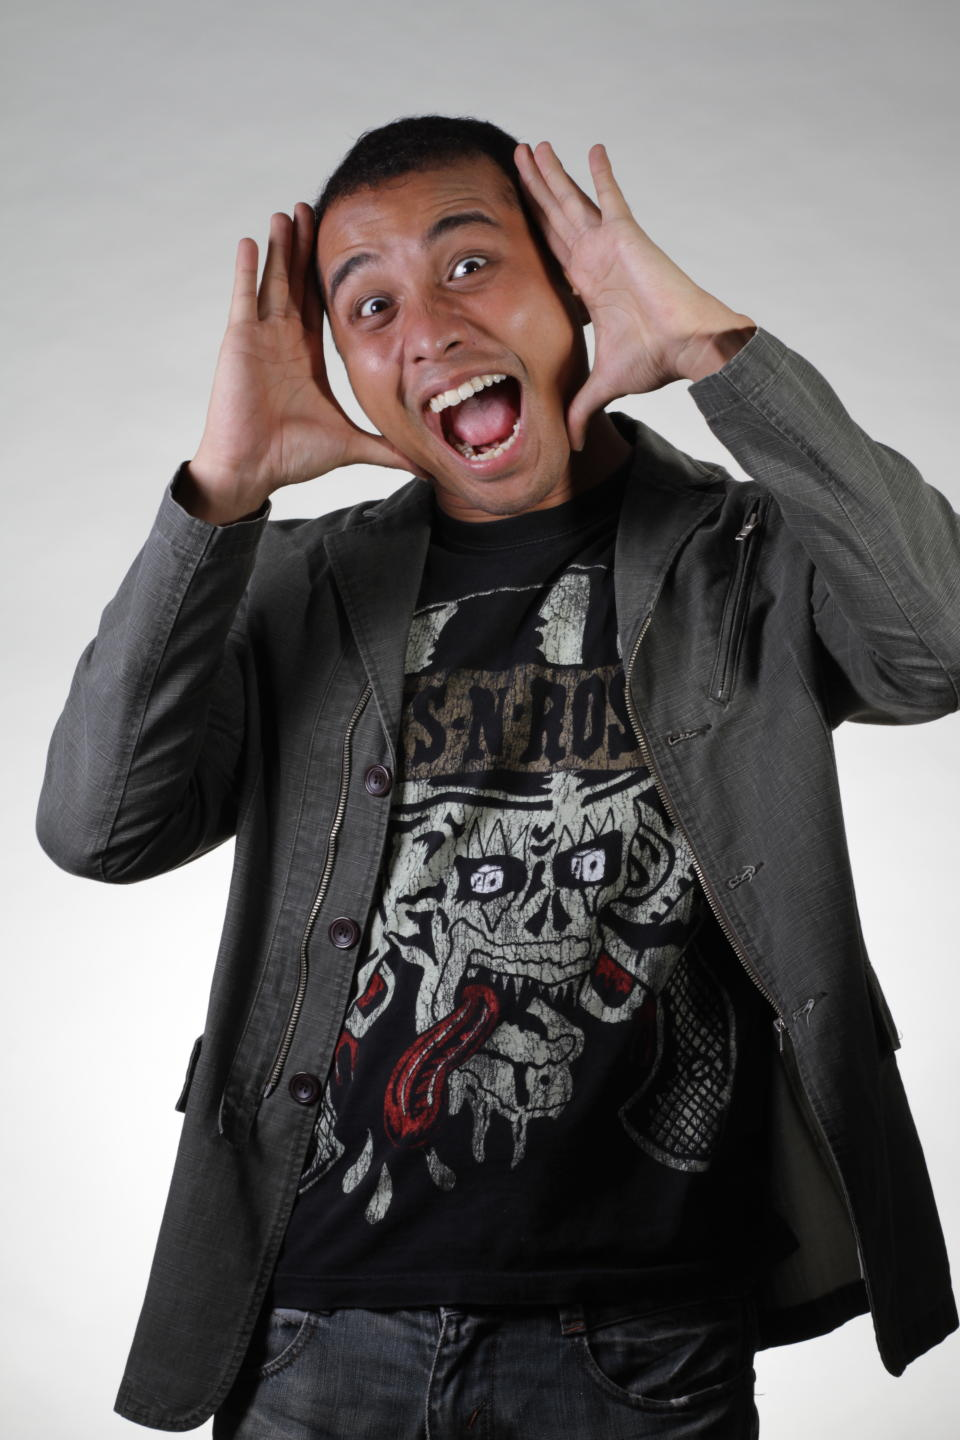 """<b><p>Fakkah Fuzz, 26</p></b> <b><p>Stand-up Comedian</p></b> <br> <p>Fakkah Fuzz is one of the fastest rising talents in the local stand up comedy scene. Performing stand up comedy for almost 3 years, Fuzz has performed in local open mics and feature shows, receiving positive reviews from local media such as The Straits Times Life, Berita Harian, The New Paper, 8 days magazine and Channel NewsAsia.</p> <br> <p>In August 2011, Fuzz was chosen as the headlining comedian to represent Singapore in """"Laugh Off Asia 2011"""", a new concept comedy show that pitched Singaporean comics against their Malaysian counterparts. In addition, after performing for Wild Rice Annual Ball and the Singapore leg of """"Laugh of Asia"""" (Singapore Vs Philippines), Fuzz has also ventured into Malaysia and performed alongside international headliners like JJ Whitehead (Canada) and Anil Desai (UK) with The Comedy Club KL. He has even opened for the likes of Malaysian comedy heavyweight Harith Iskander.</p> <br> <p>In 2012, Fuzz made his debut in Hong Kong with TakeOut Comedy, featured as one of the headline acts for a monthly show in Kuala Lumpur called """"Comedy Kao Kao"""". He has also hosted a Malaysian live comedy show called """"The Goodflers"""". He is also one of the finalists for a local stand up competition, """"Stand Up for Singapore"""".</p>"""